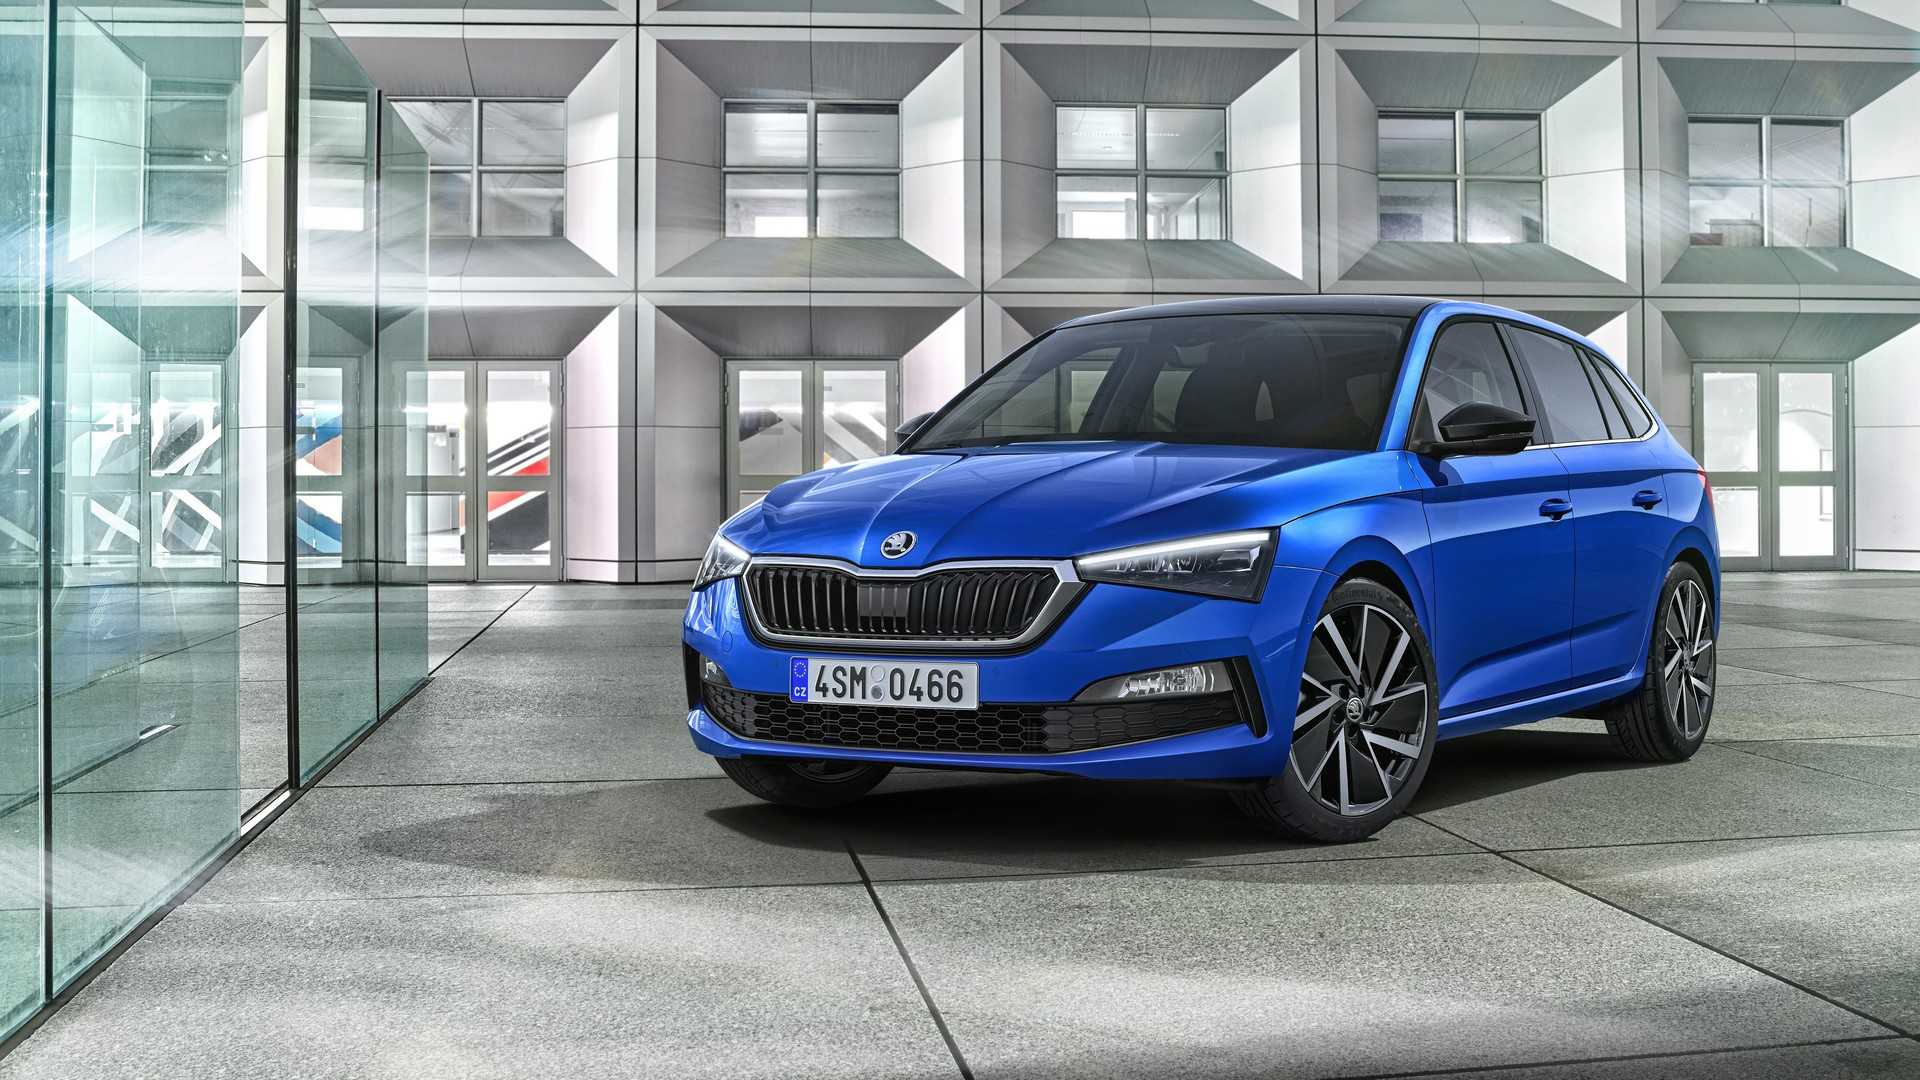 Skoda unveils the Scala hatchback